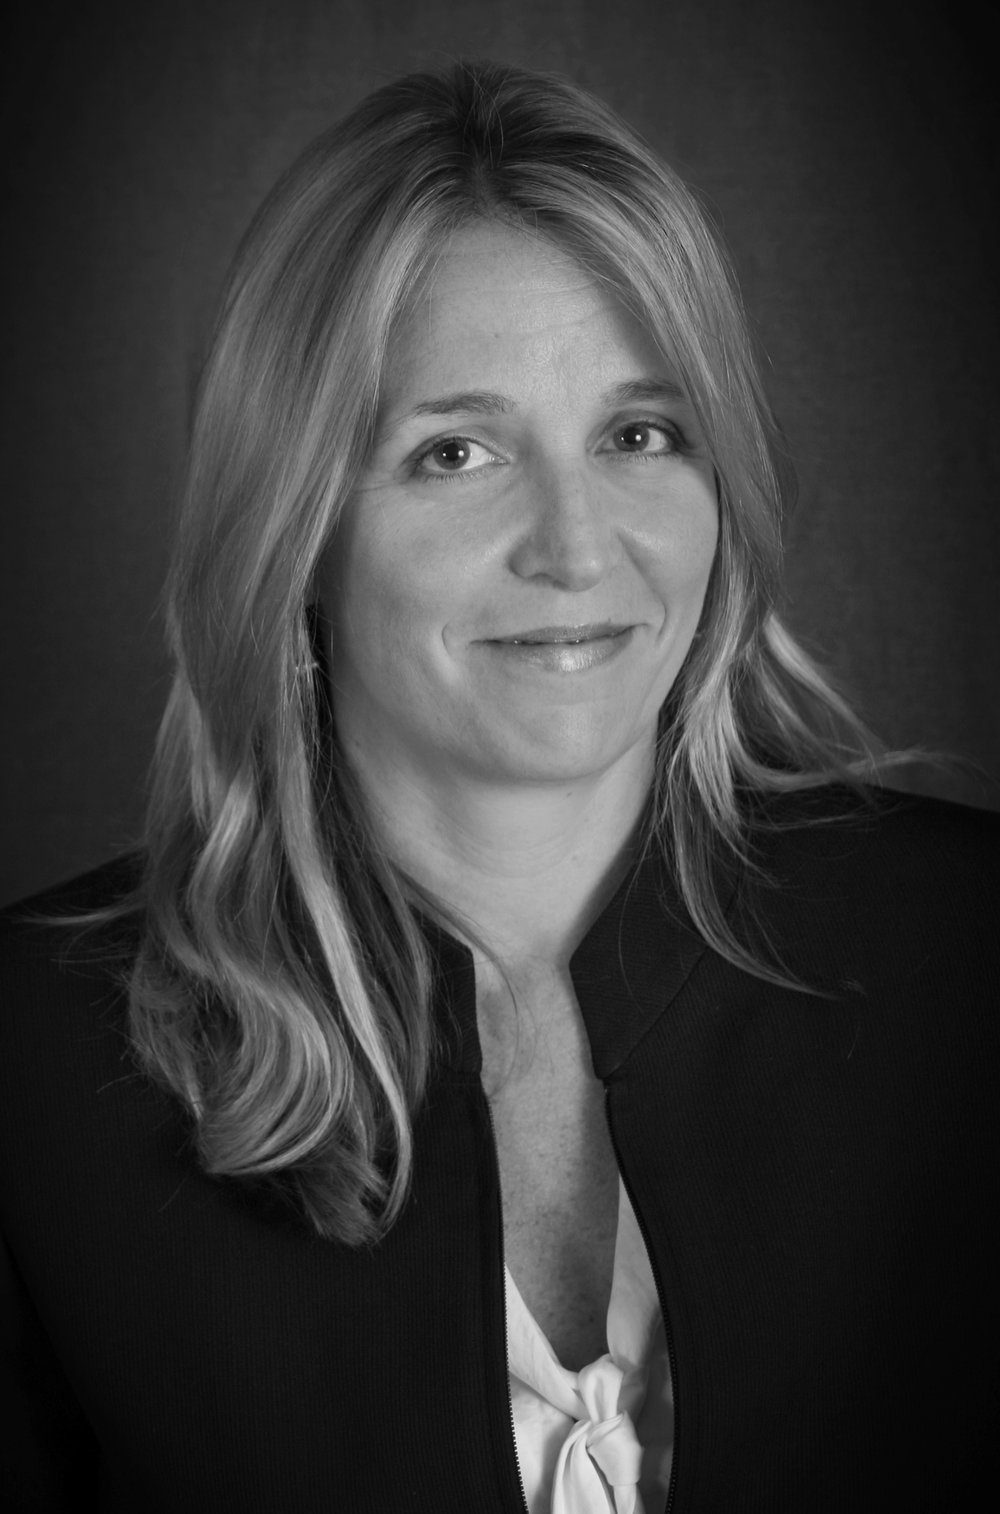 <p><strong>Kelly Fitzsimmons</strong>Director of Innovation and Policy Planning<a href=/kelly-fitzsimmons>More →</a></p>